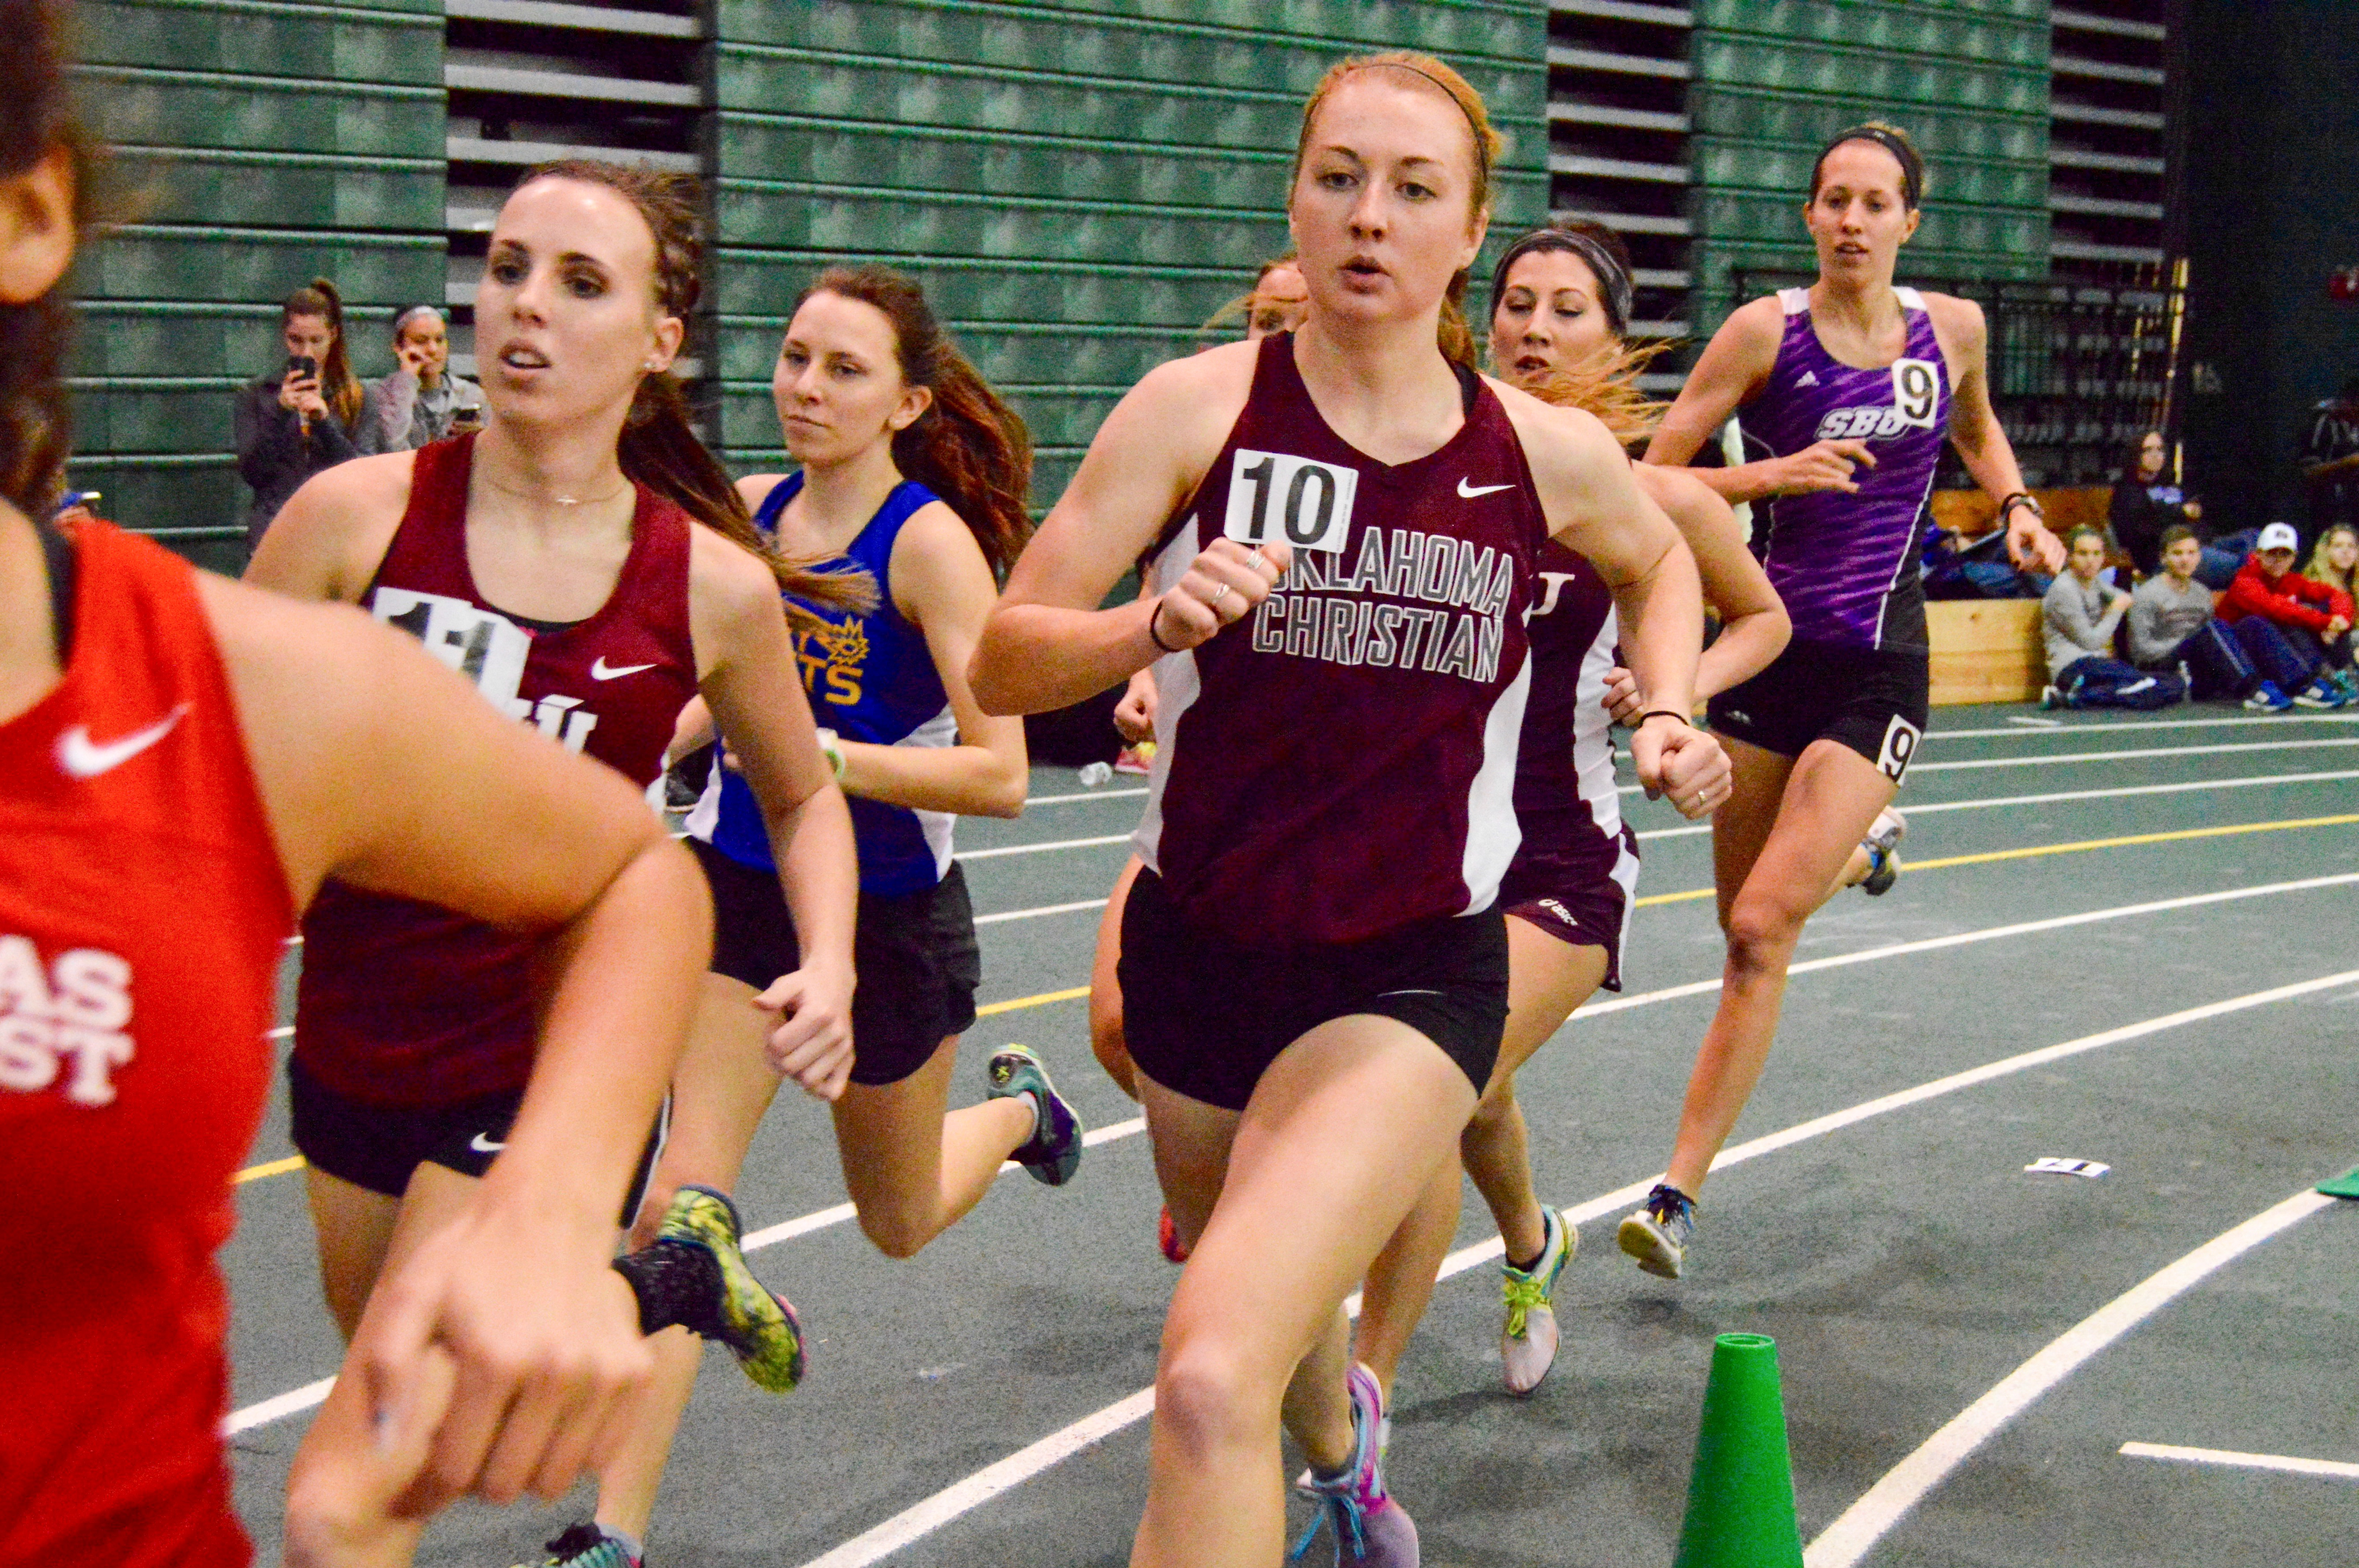 Molly McQuirk leads the Lady Eagles in the 3,000-meter race on Jan. 23. Photo by Katie Jones